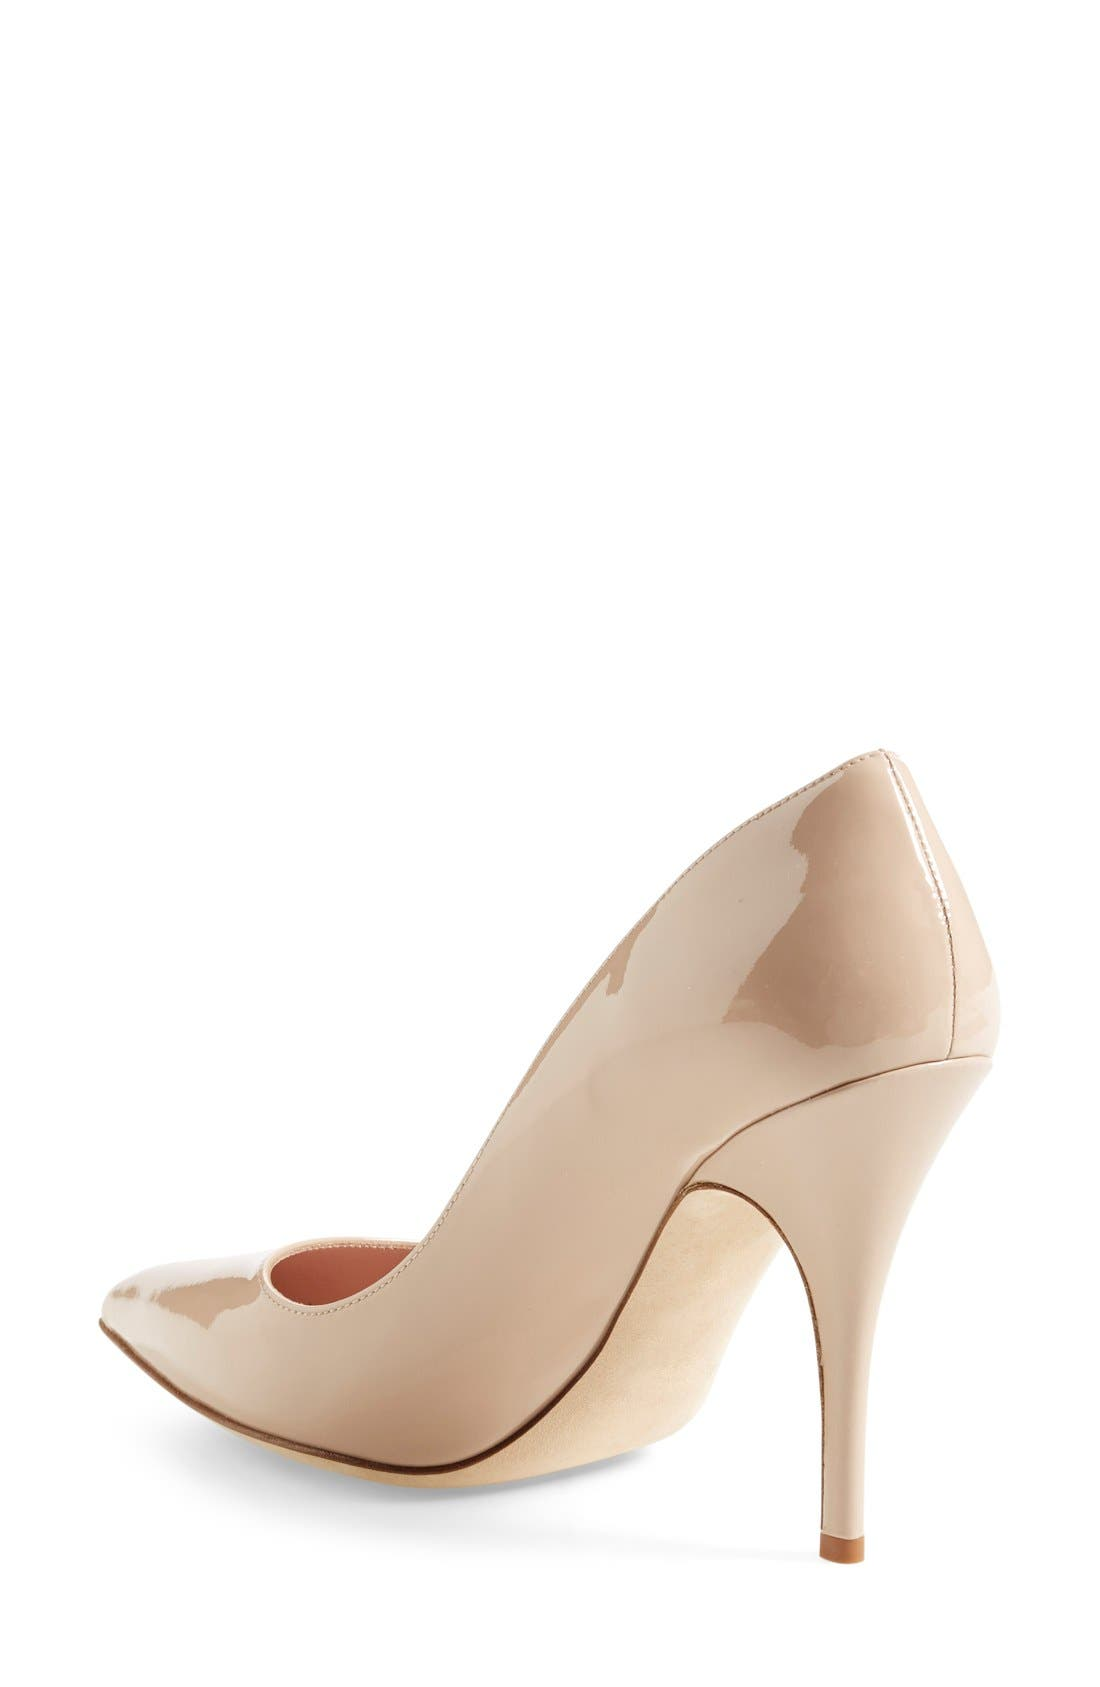 Alternate Image 2  - kate spade new york 'licorice too' pump (Women)